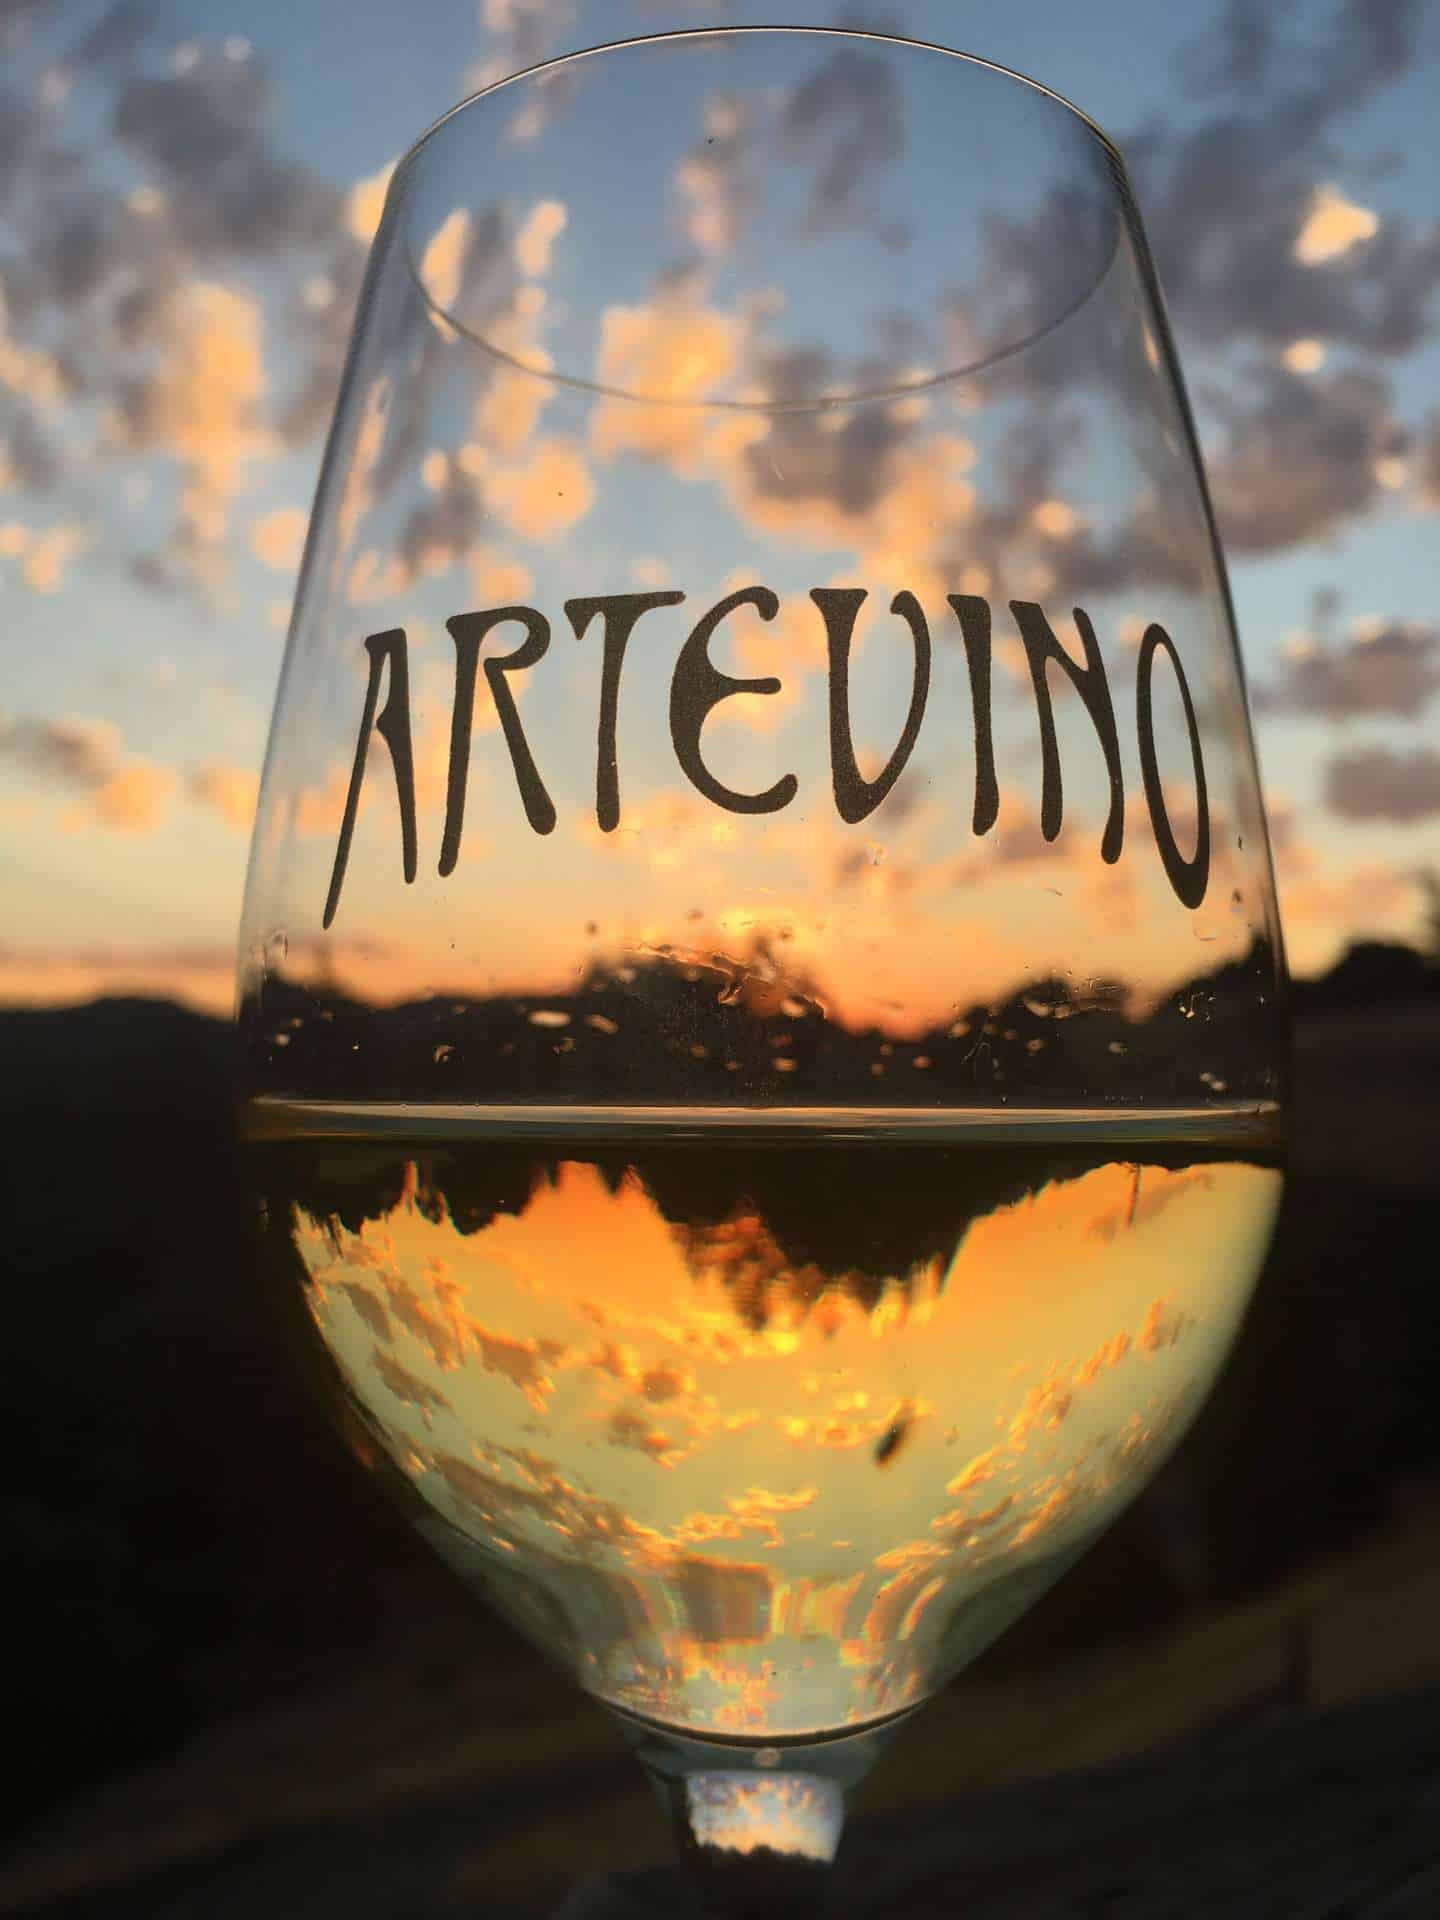 Artevino Wine Cellar Artevino Maple Creek Winery California Winery Advisor